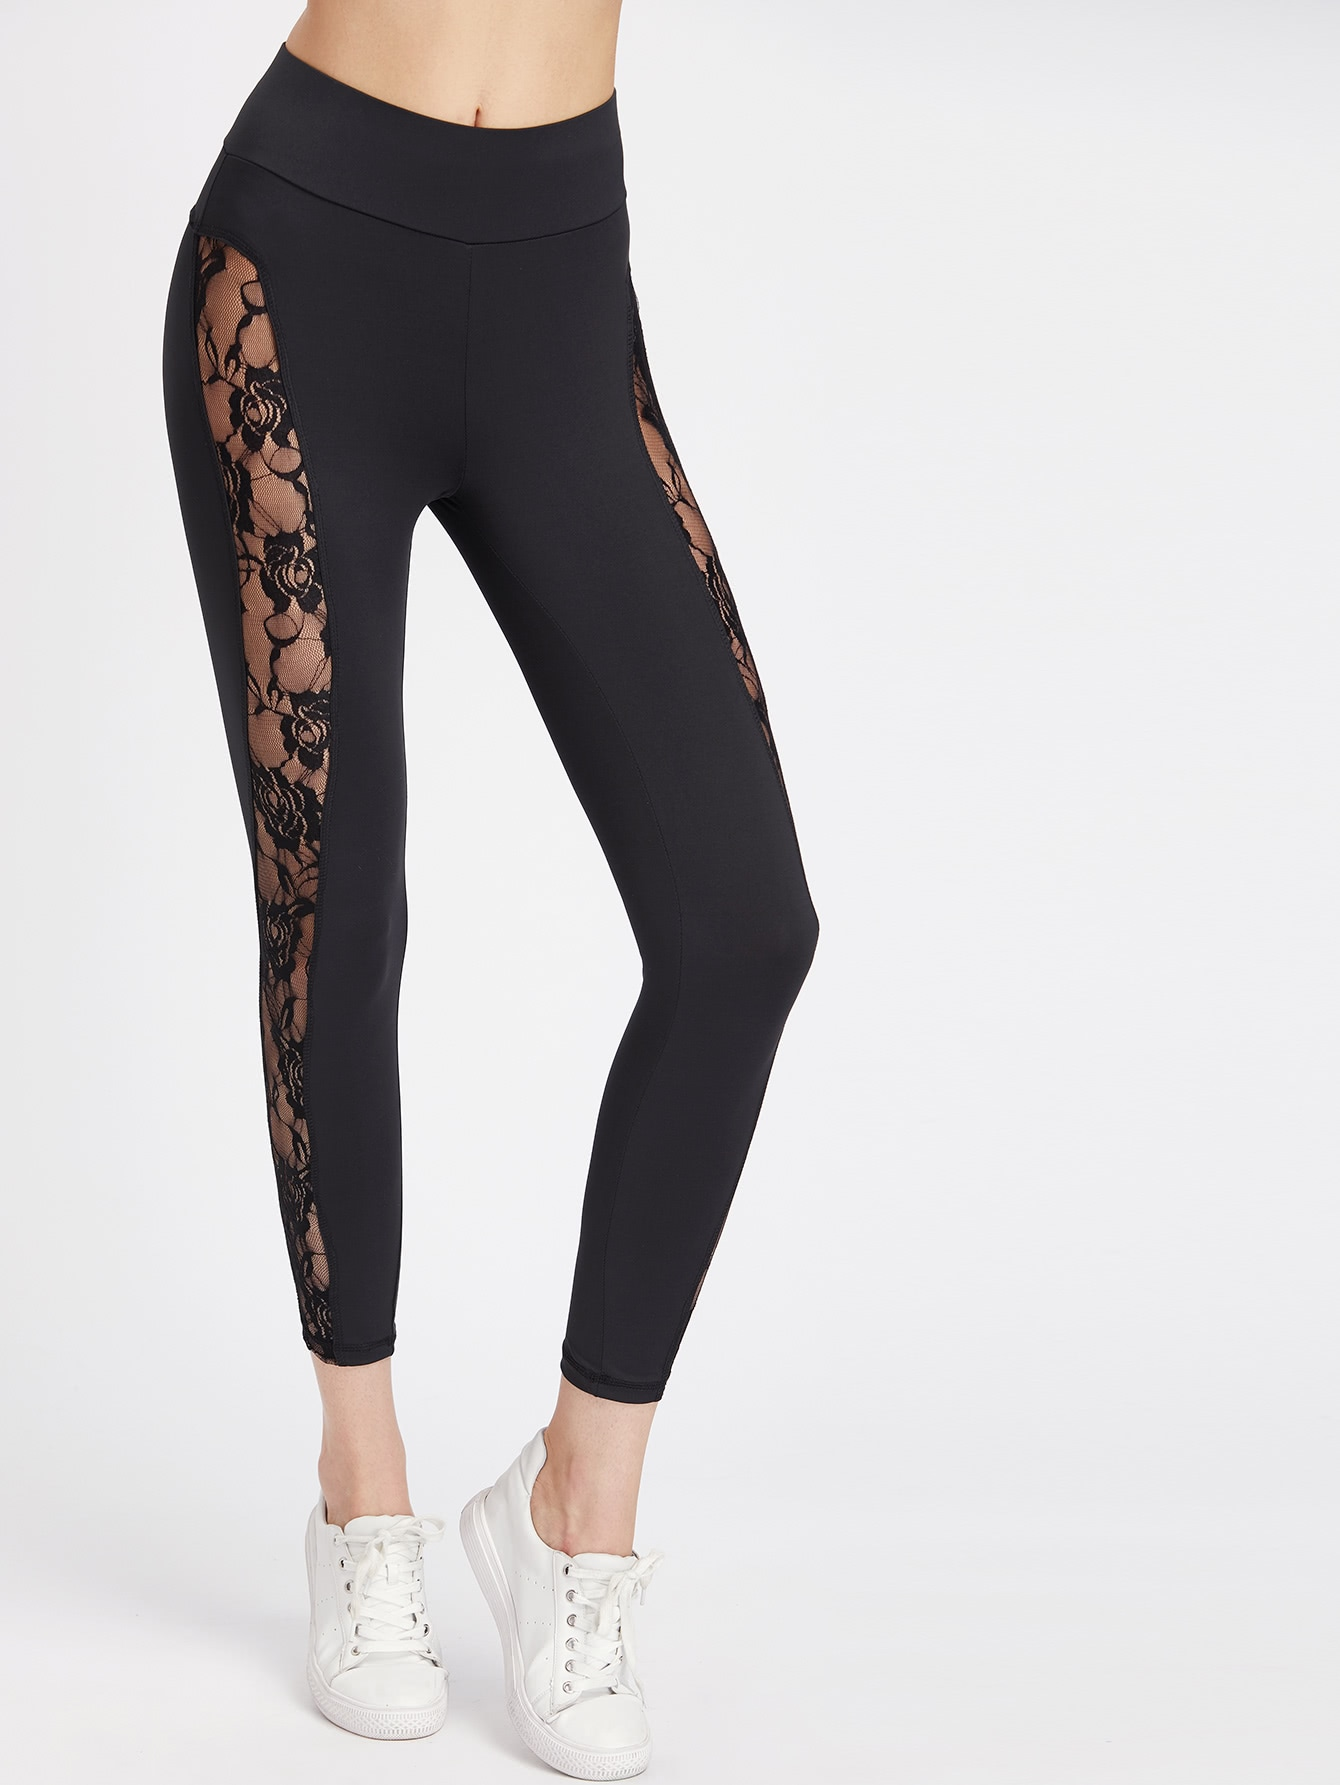 Lace Insert Leggings серьги polina selezneva серьги ps by polina selezneva